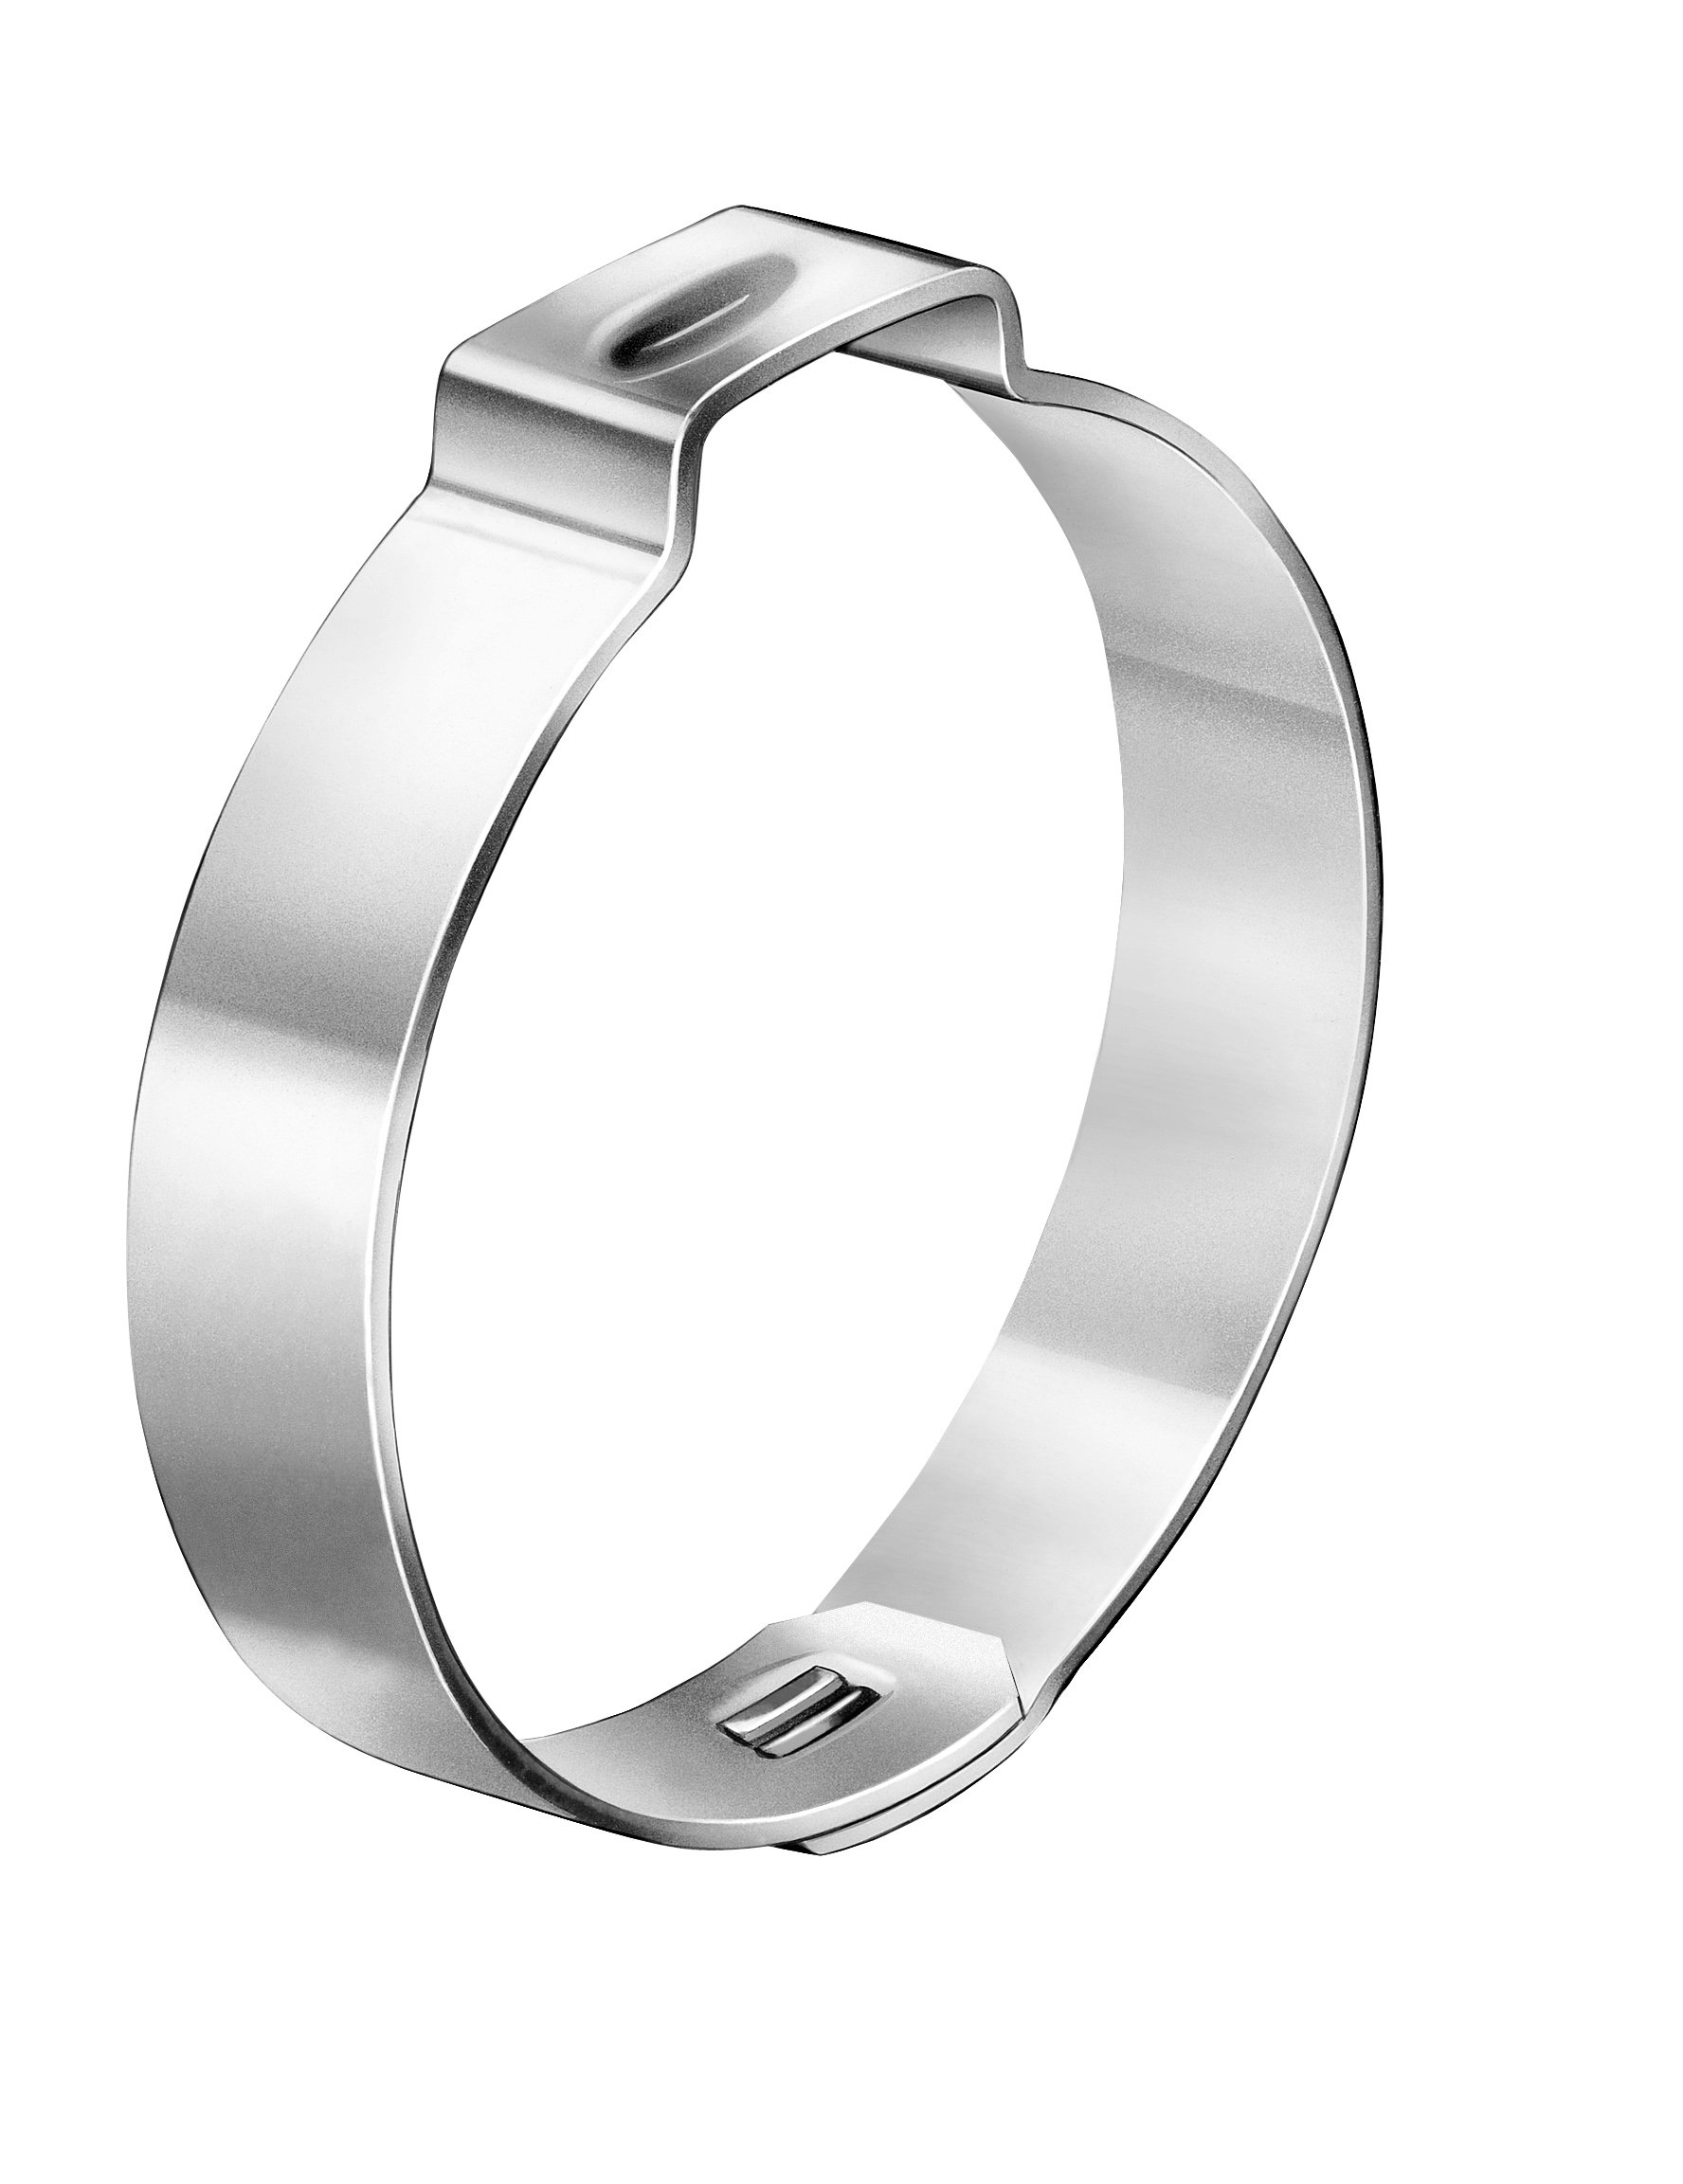 Oetiker 10500010 Zinc-Plated Steel Hose Clamp with Mechanical Interlock, One Ear, 7 mm Band Width, Clamp ID Range 15.7 mm (Closed) - 18.5 mm (Open) (Pack of 100)